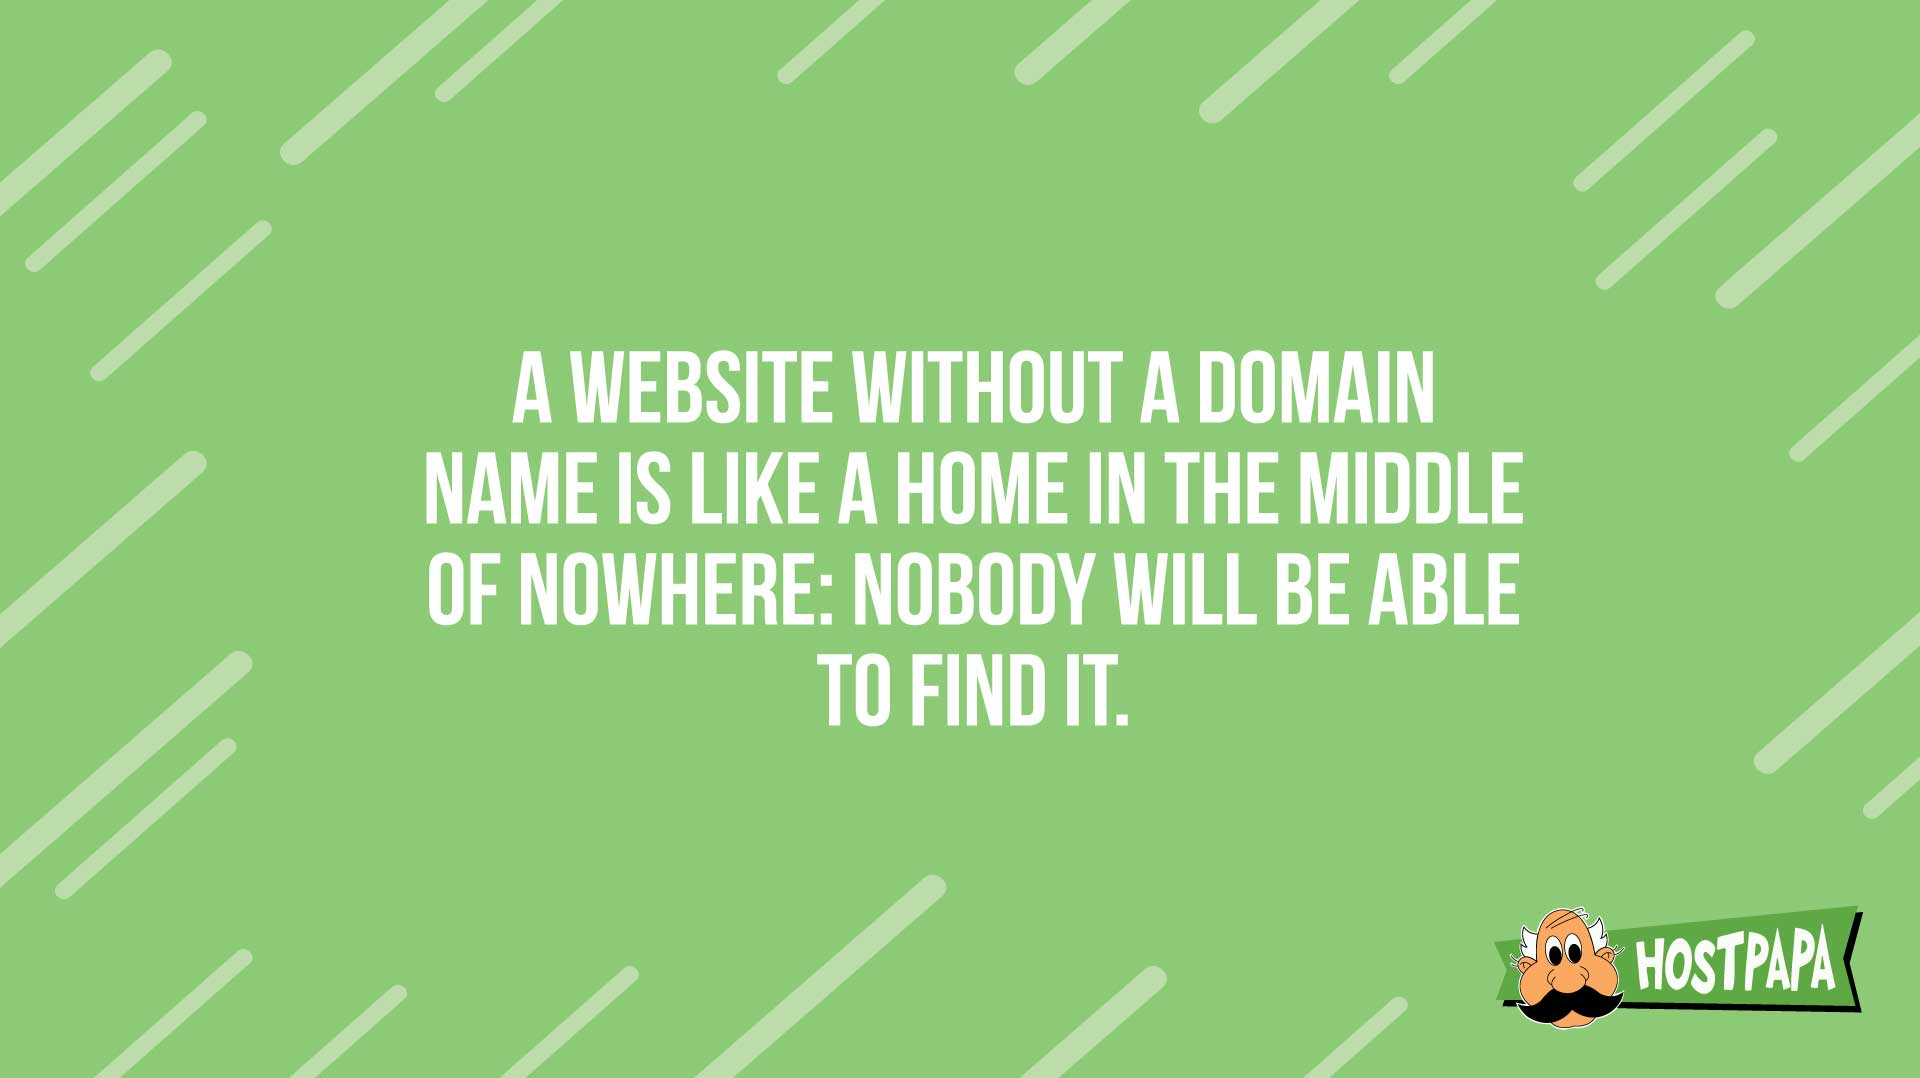 A website without a domain name is like a home in the middle of nowhere: nobody will be able to find it.